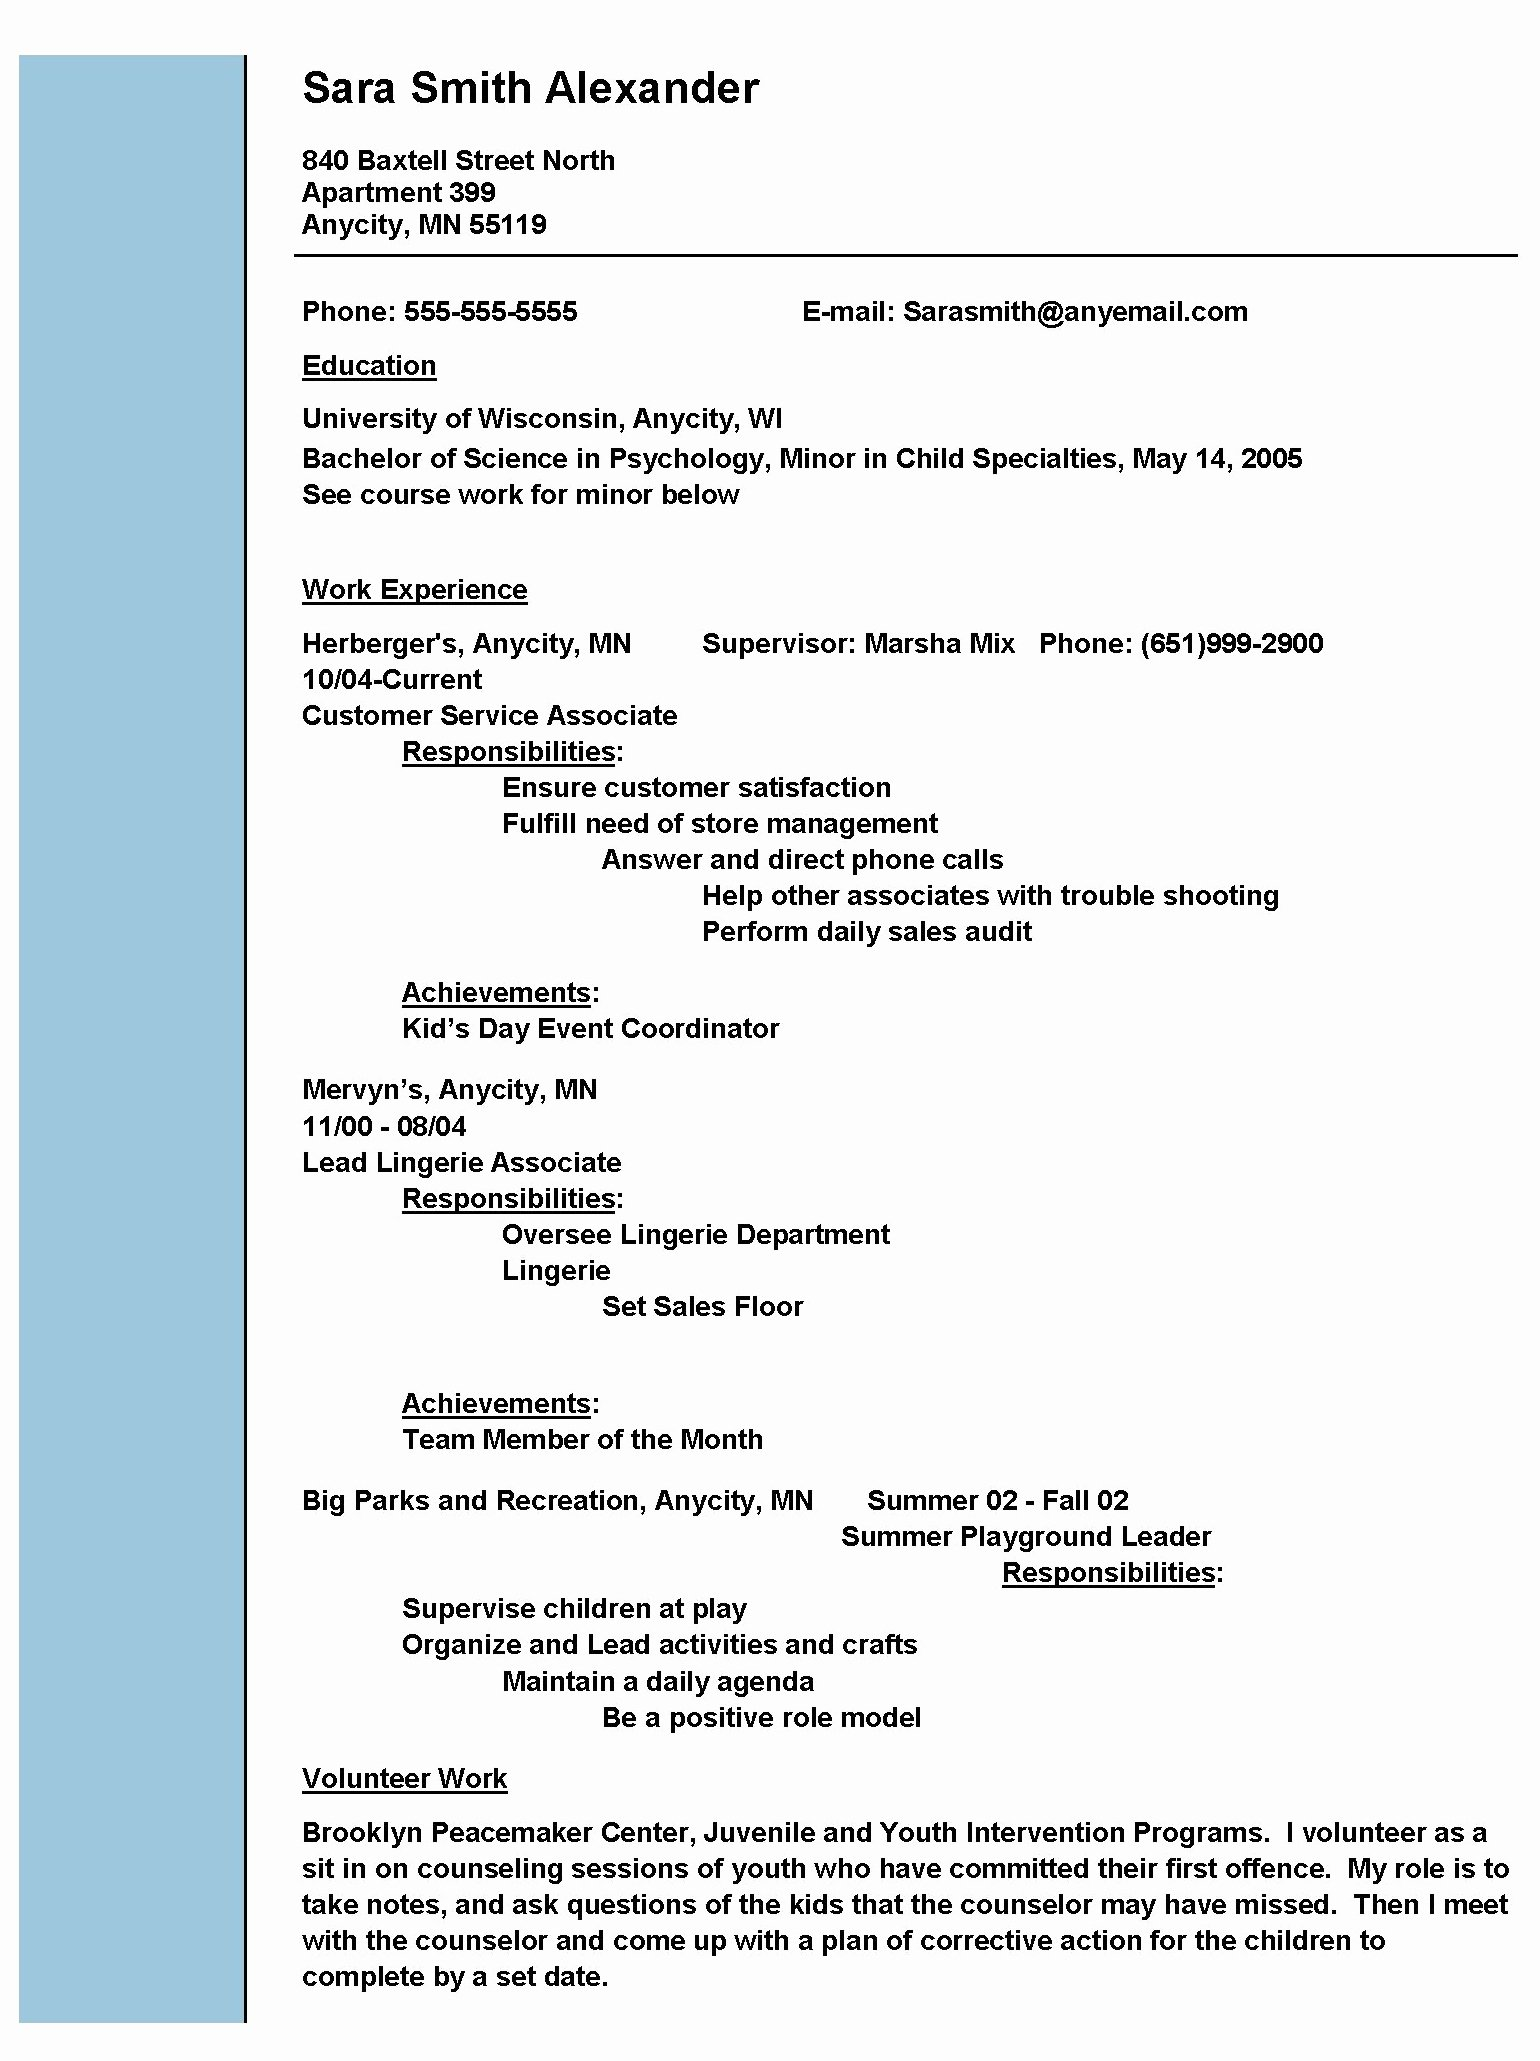 Social Work Resume Example Resume Templates